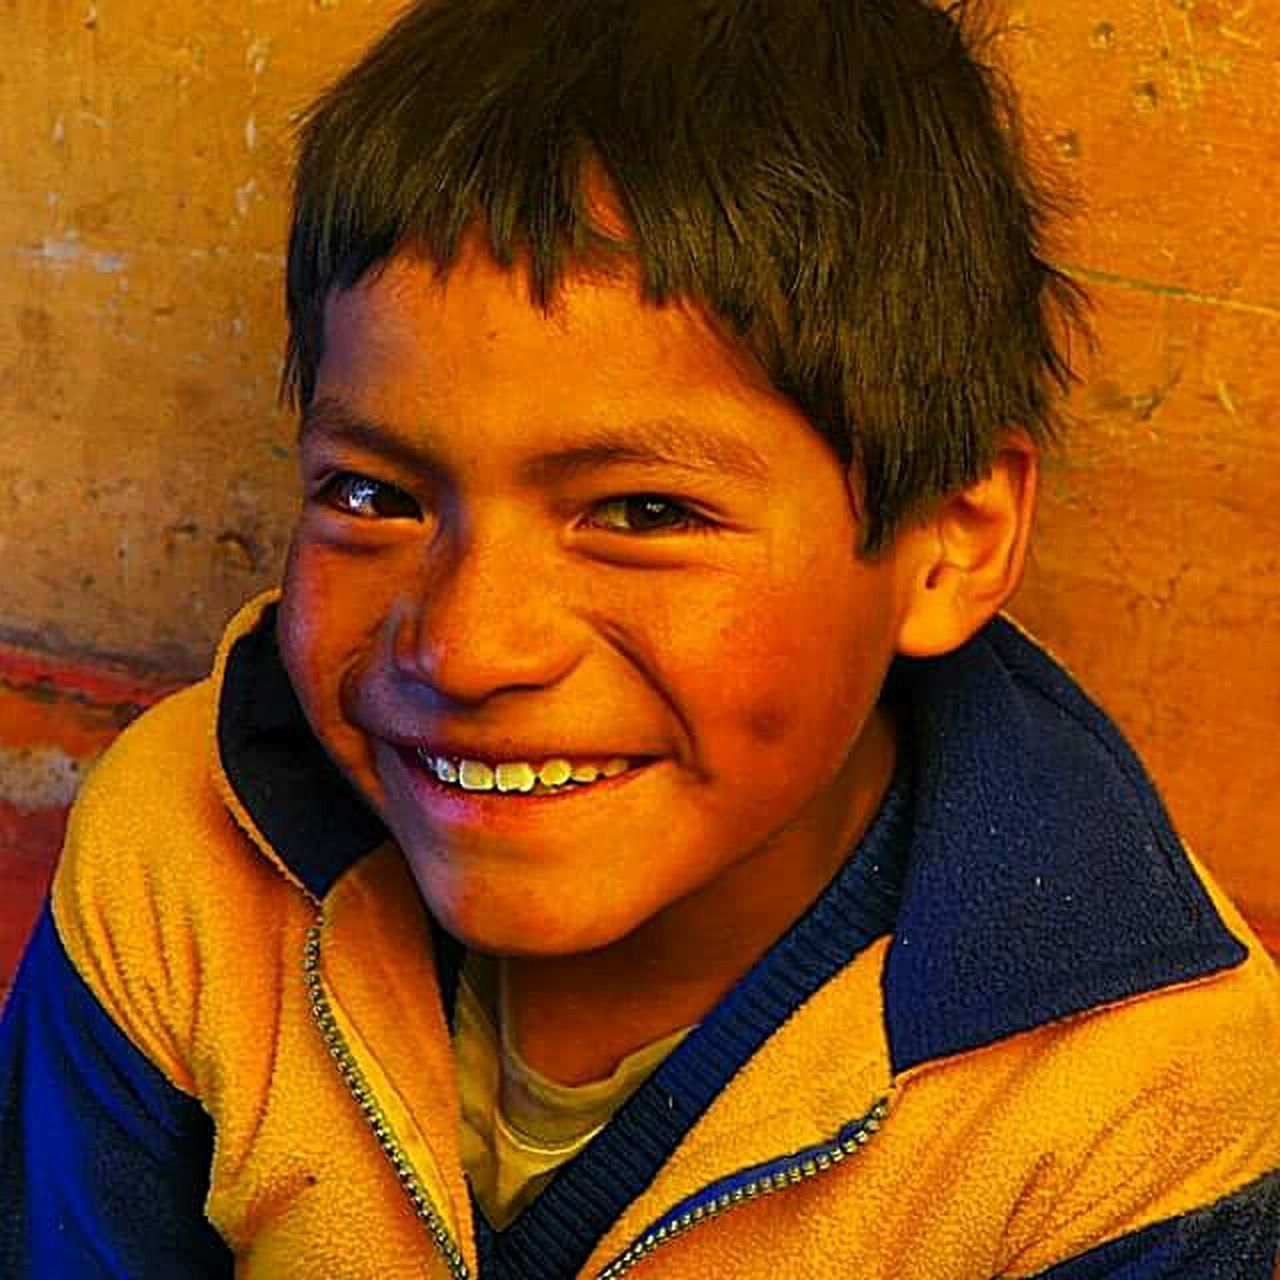 smiling, boys, portrait, happiness, child, one person, looking at camera, people, real people, headshot, childhood, cheerful, one boy only, handsome, lifestyles, males, human body part, adult, outdoors, day, close-up, holi